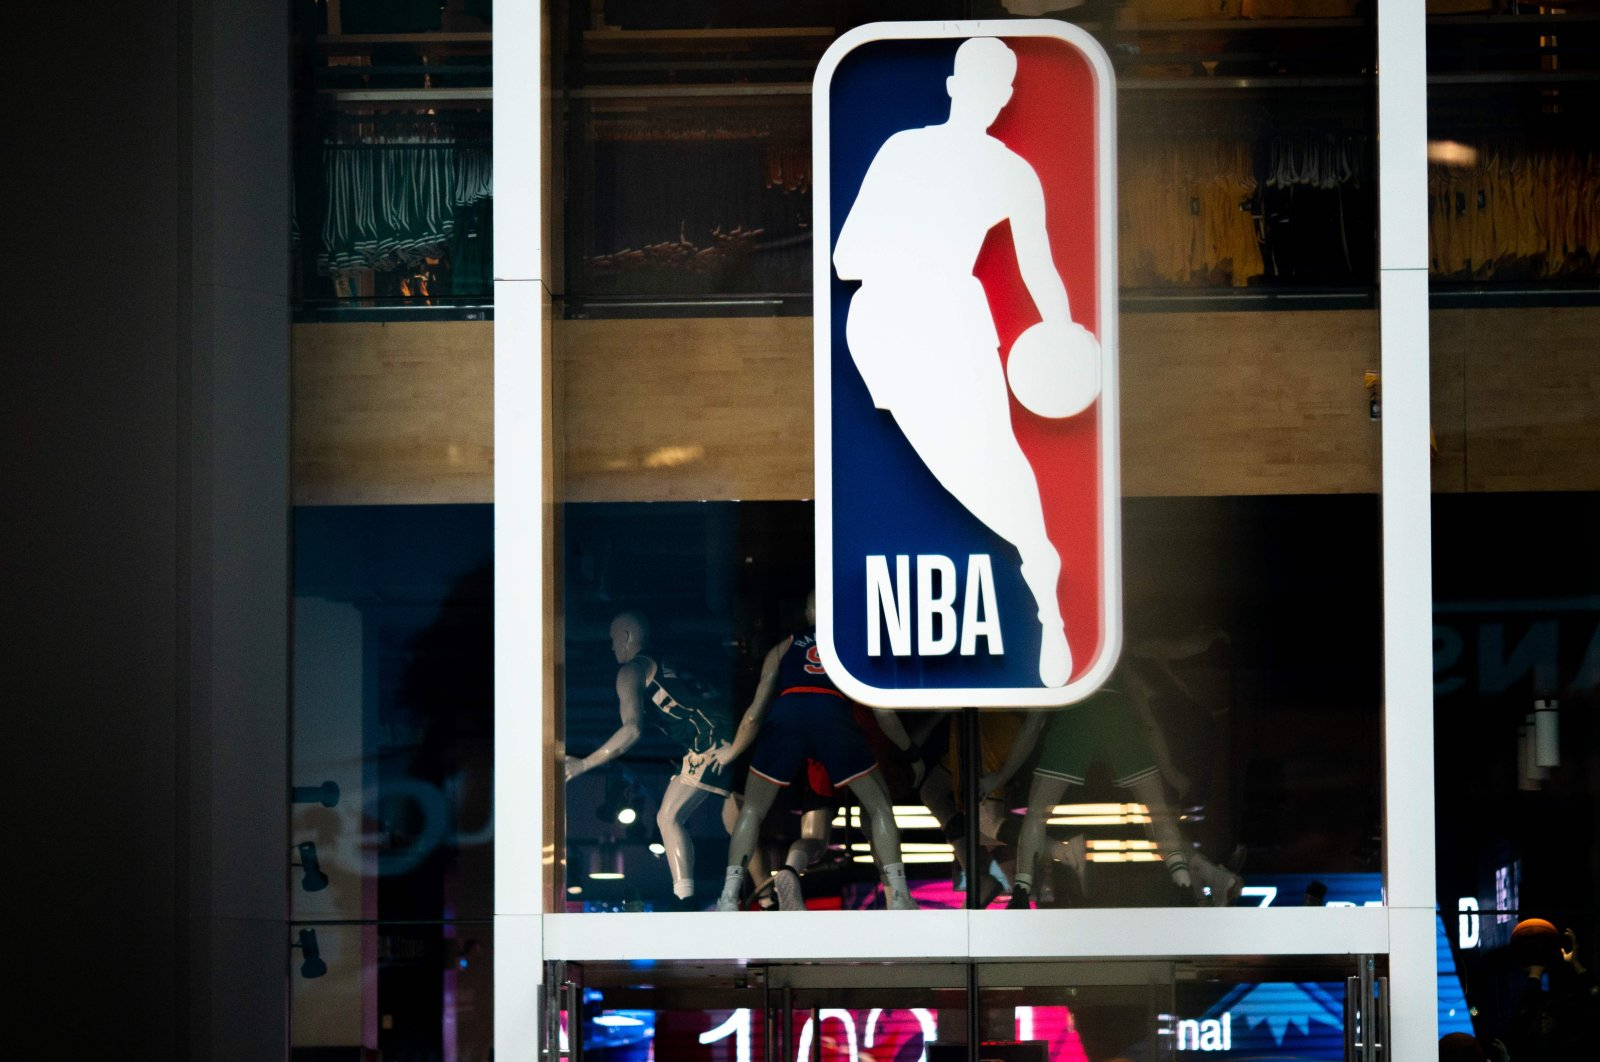 An NBA logo is shown at the Fifth Avenue NBA store in New York City, New York, U.S., March 12, 2020. (Getty Images North America / AFP)